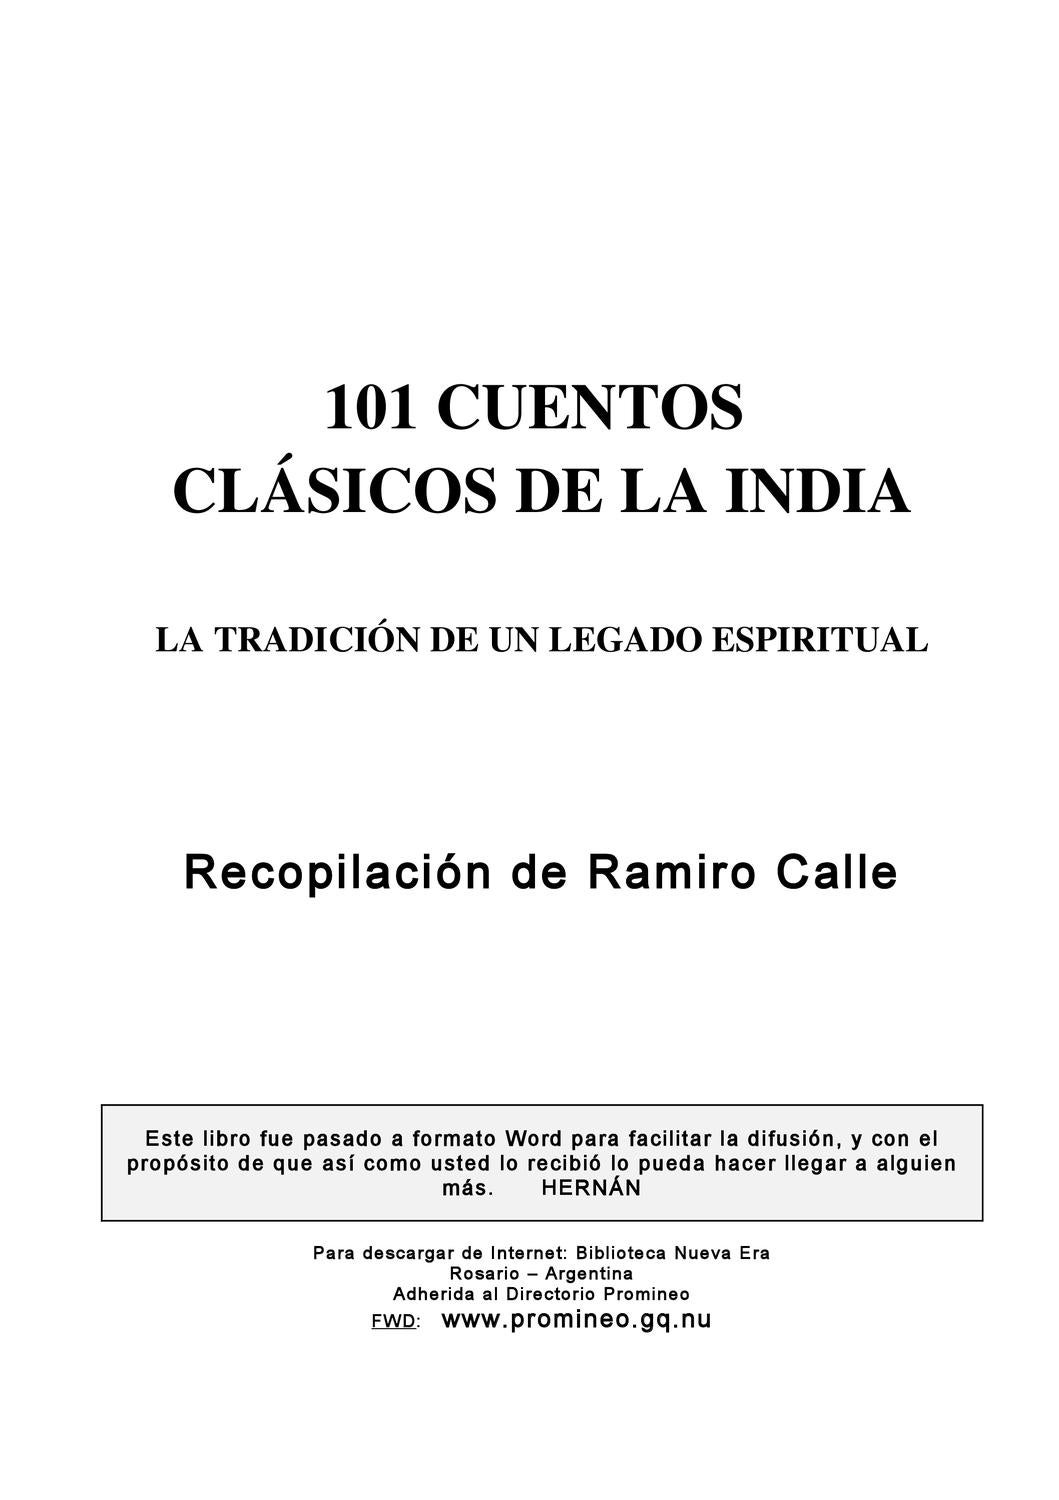 Libros Ramiro Calle 101 Cuentos By V S Issuu